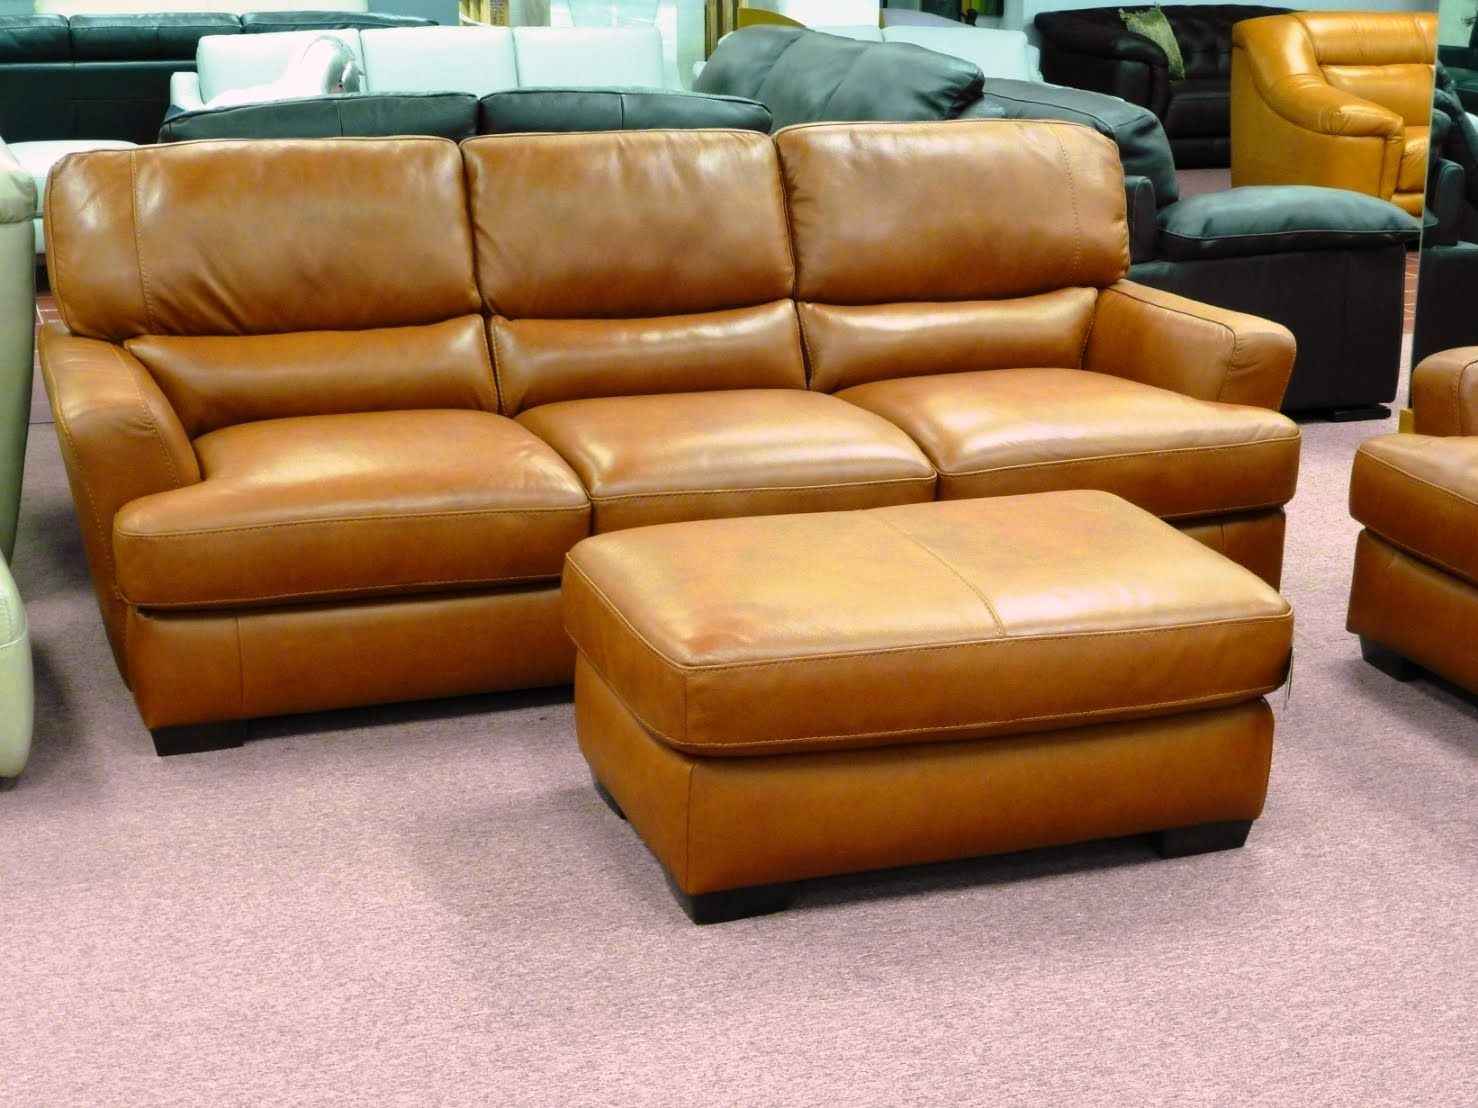 Natuzzi Sale In Natuzzi Leather Sofas Orange